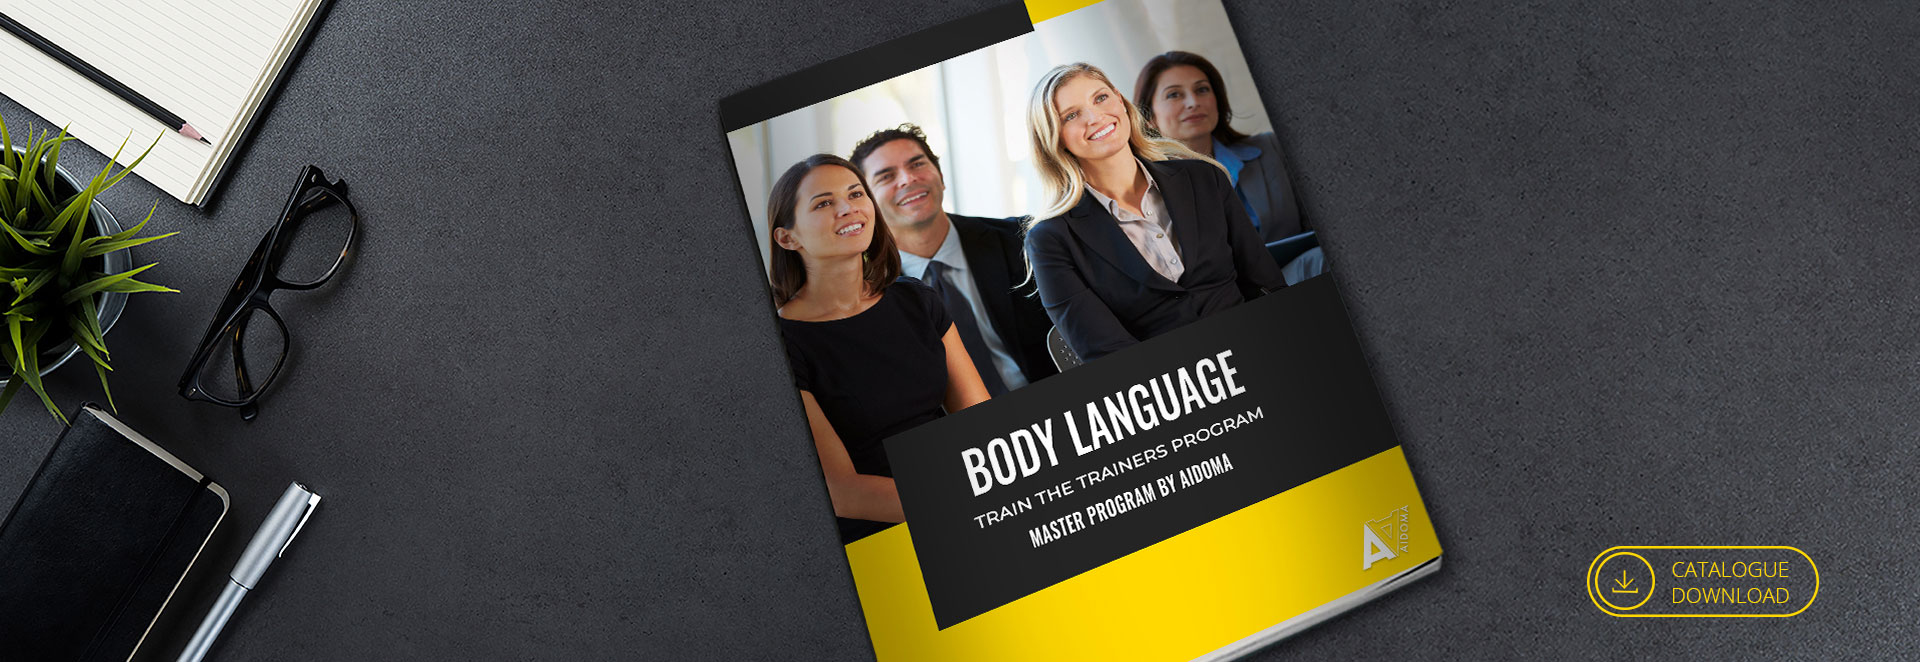 Body language - train the trainers program